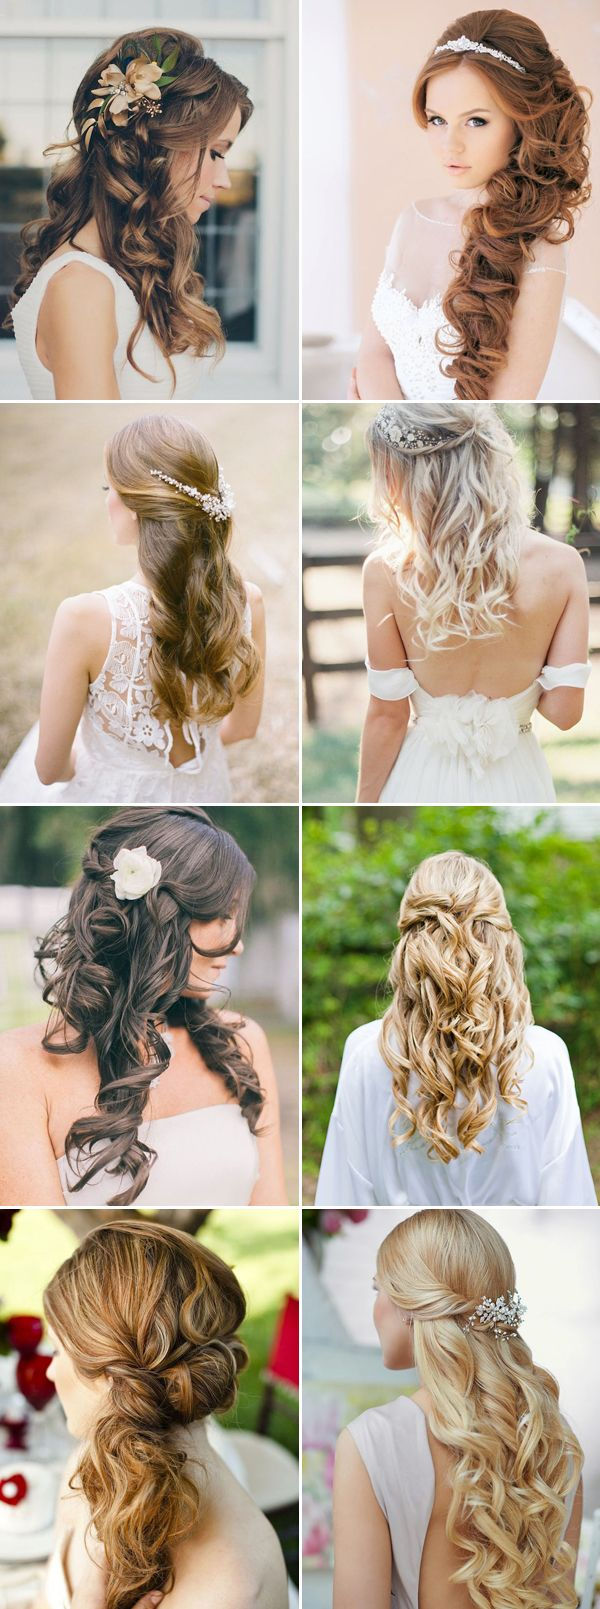 16 Gorgeous Half Up, Half Down Hairstyles for Brides - Simply Elegant